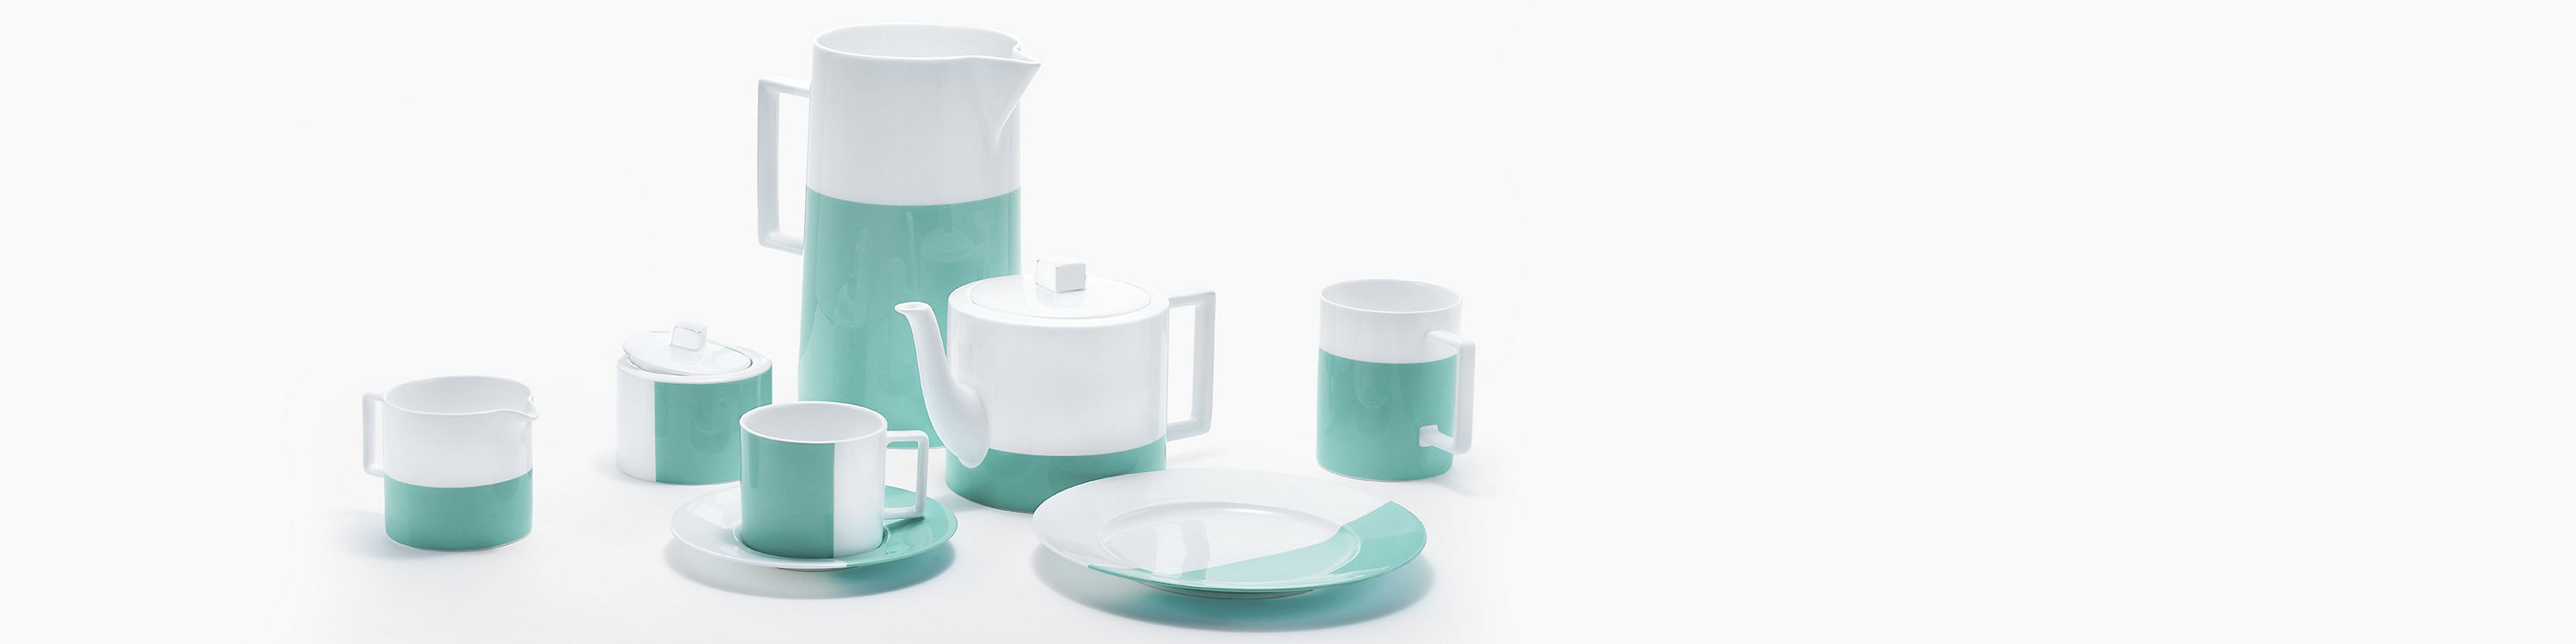 Shop Tiffany & Co. Coffee & Tea